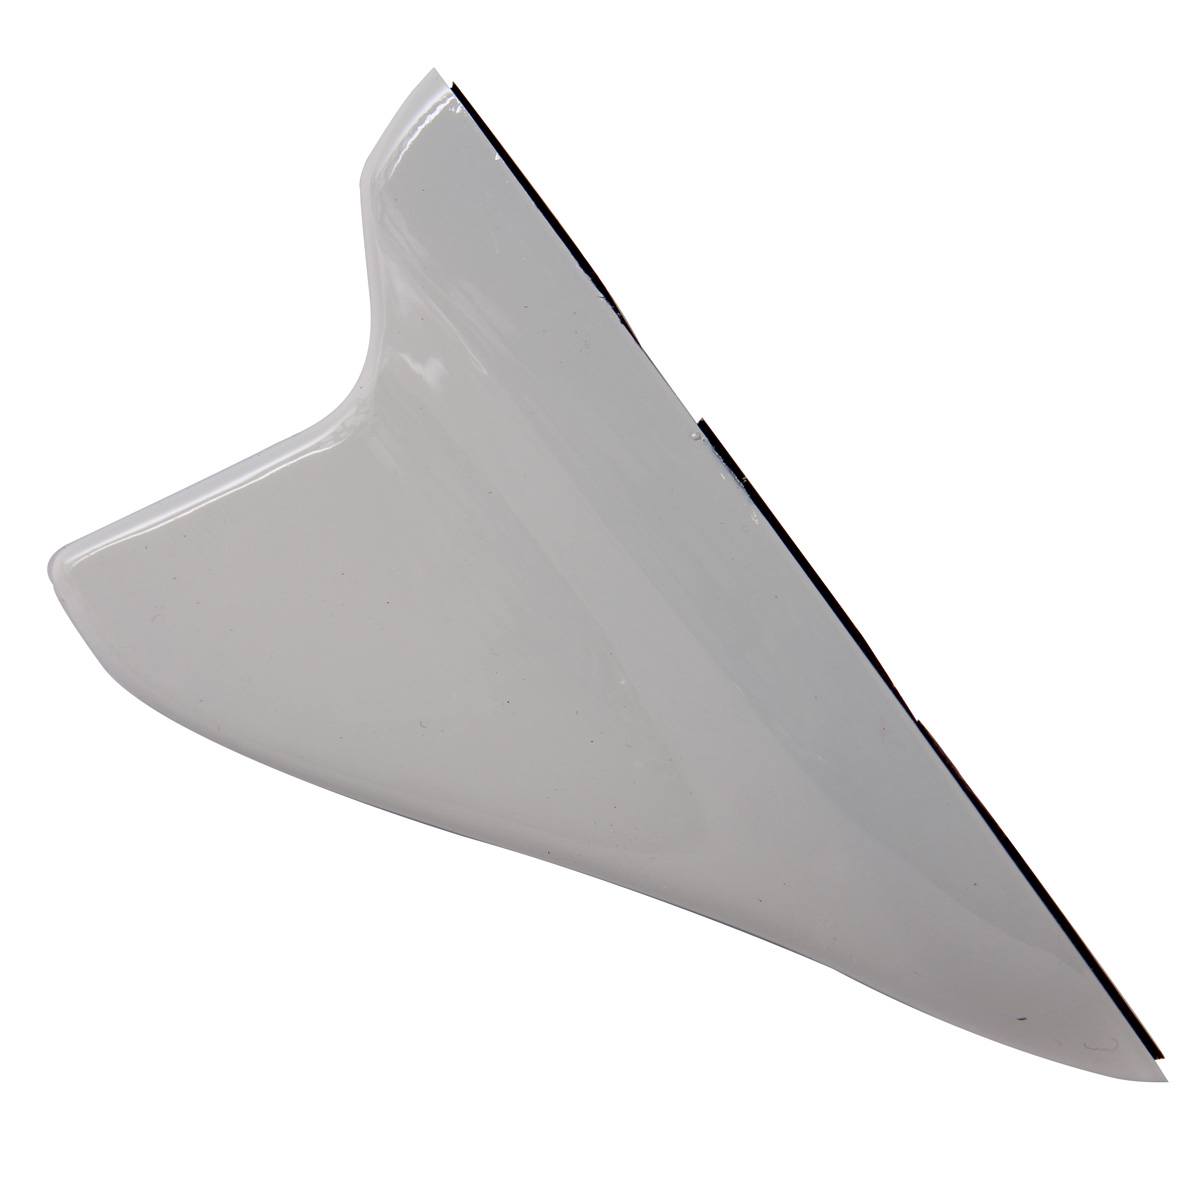 Shark fin car auto antenna aerial top roof mounted decor for Antenna decoration